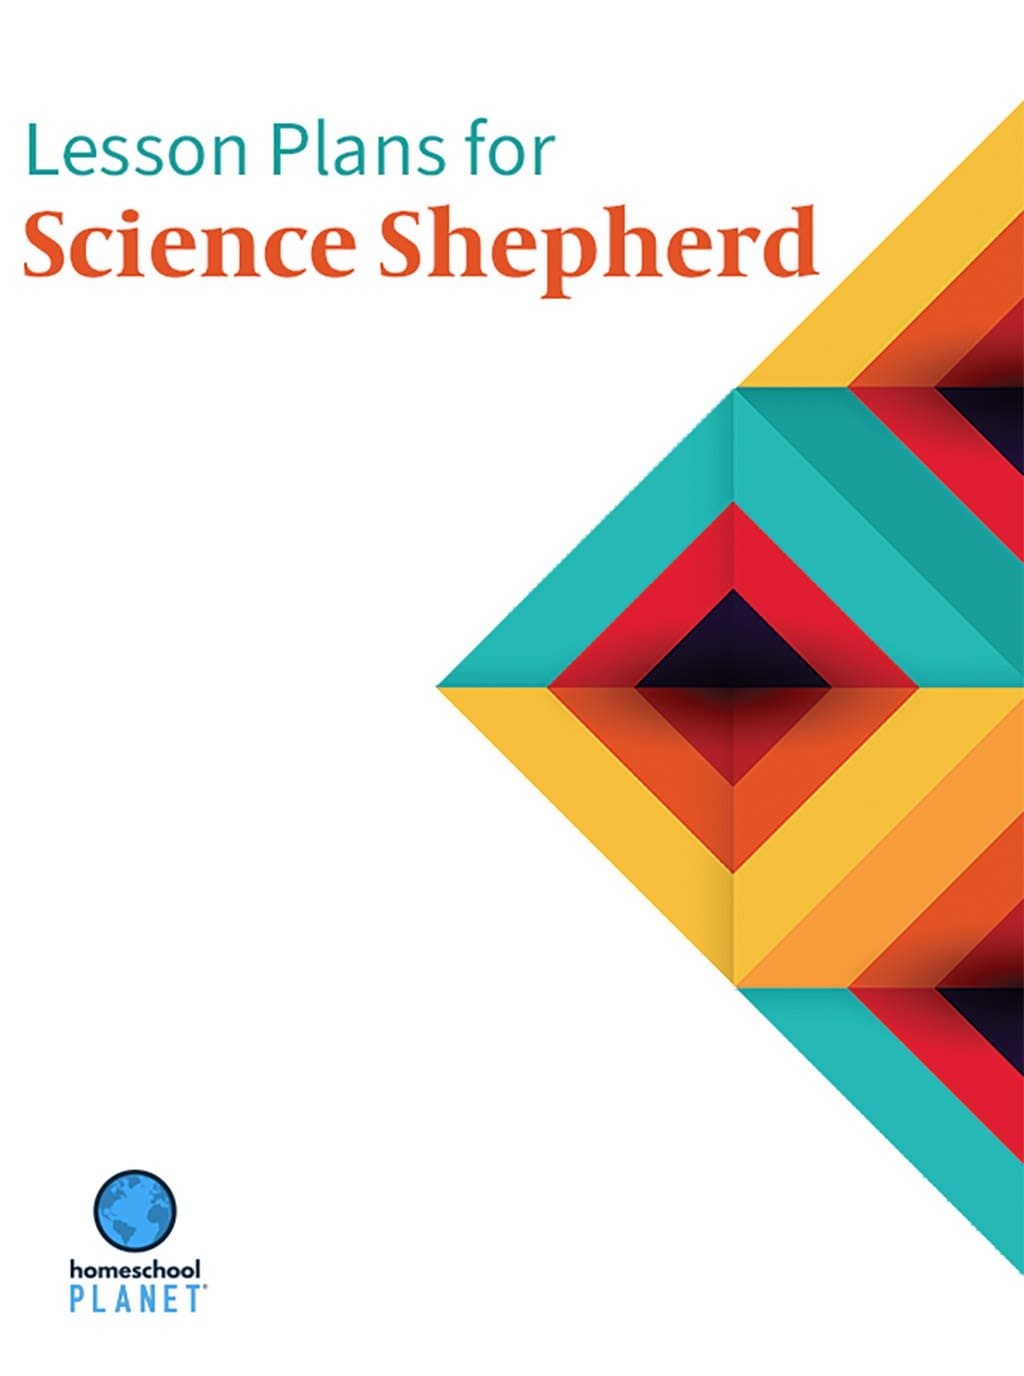 Science Shepherd Homeschool Planet lesson plan for Introductory Science cover